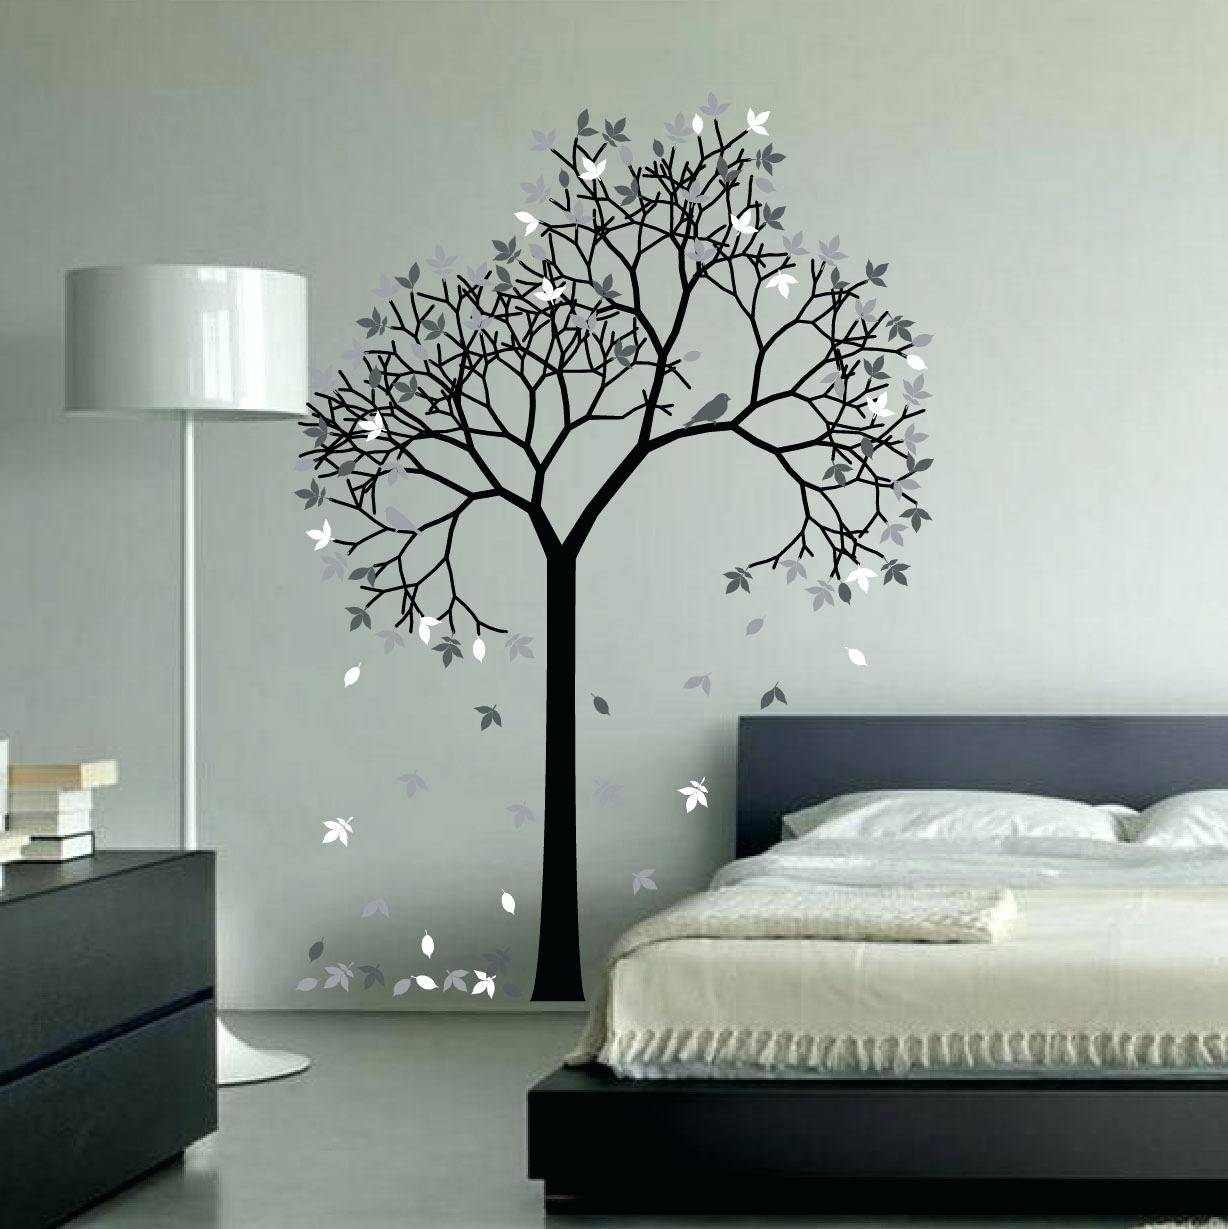 Computer Wall Decals Aspen Tree Wall Decal Sticker Vinyl Art With Best And Newest Computer Wall Art (View 12 of 20)